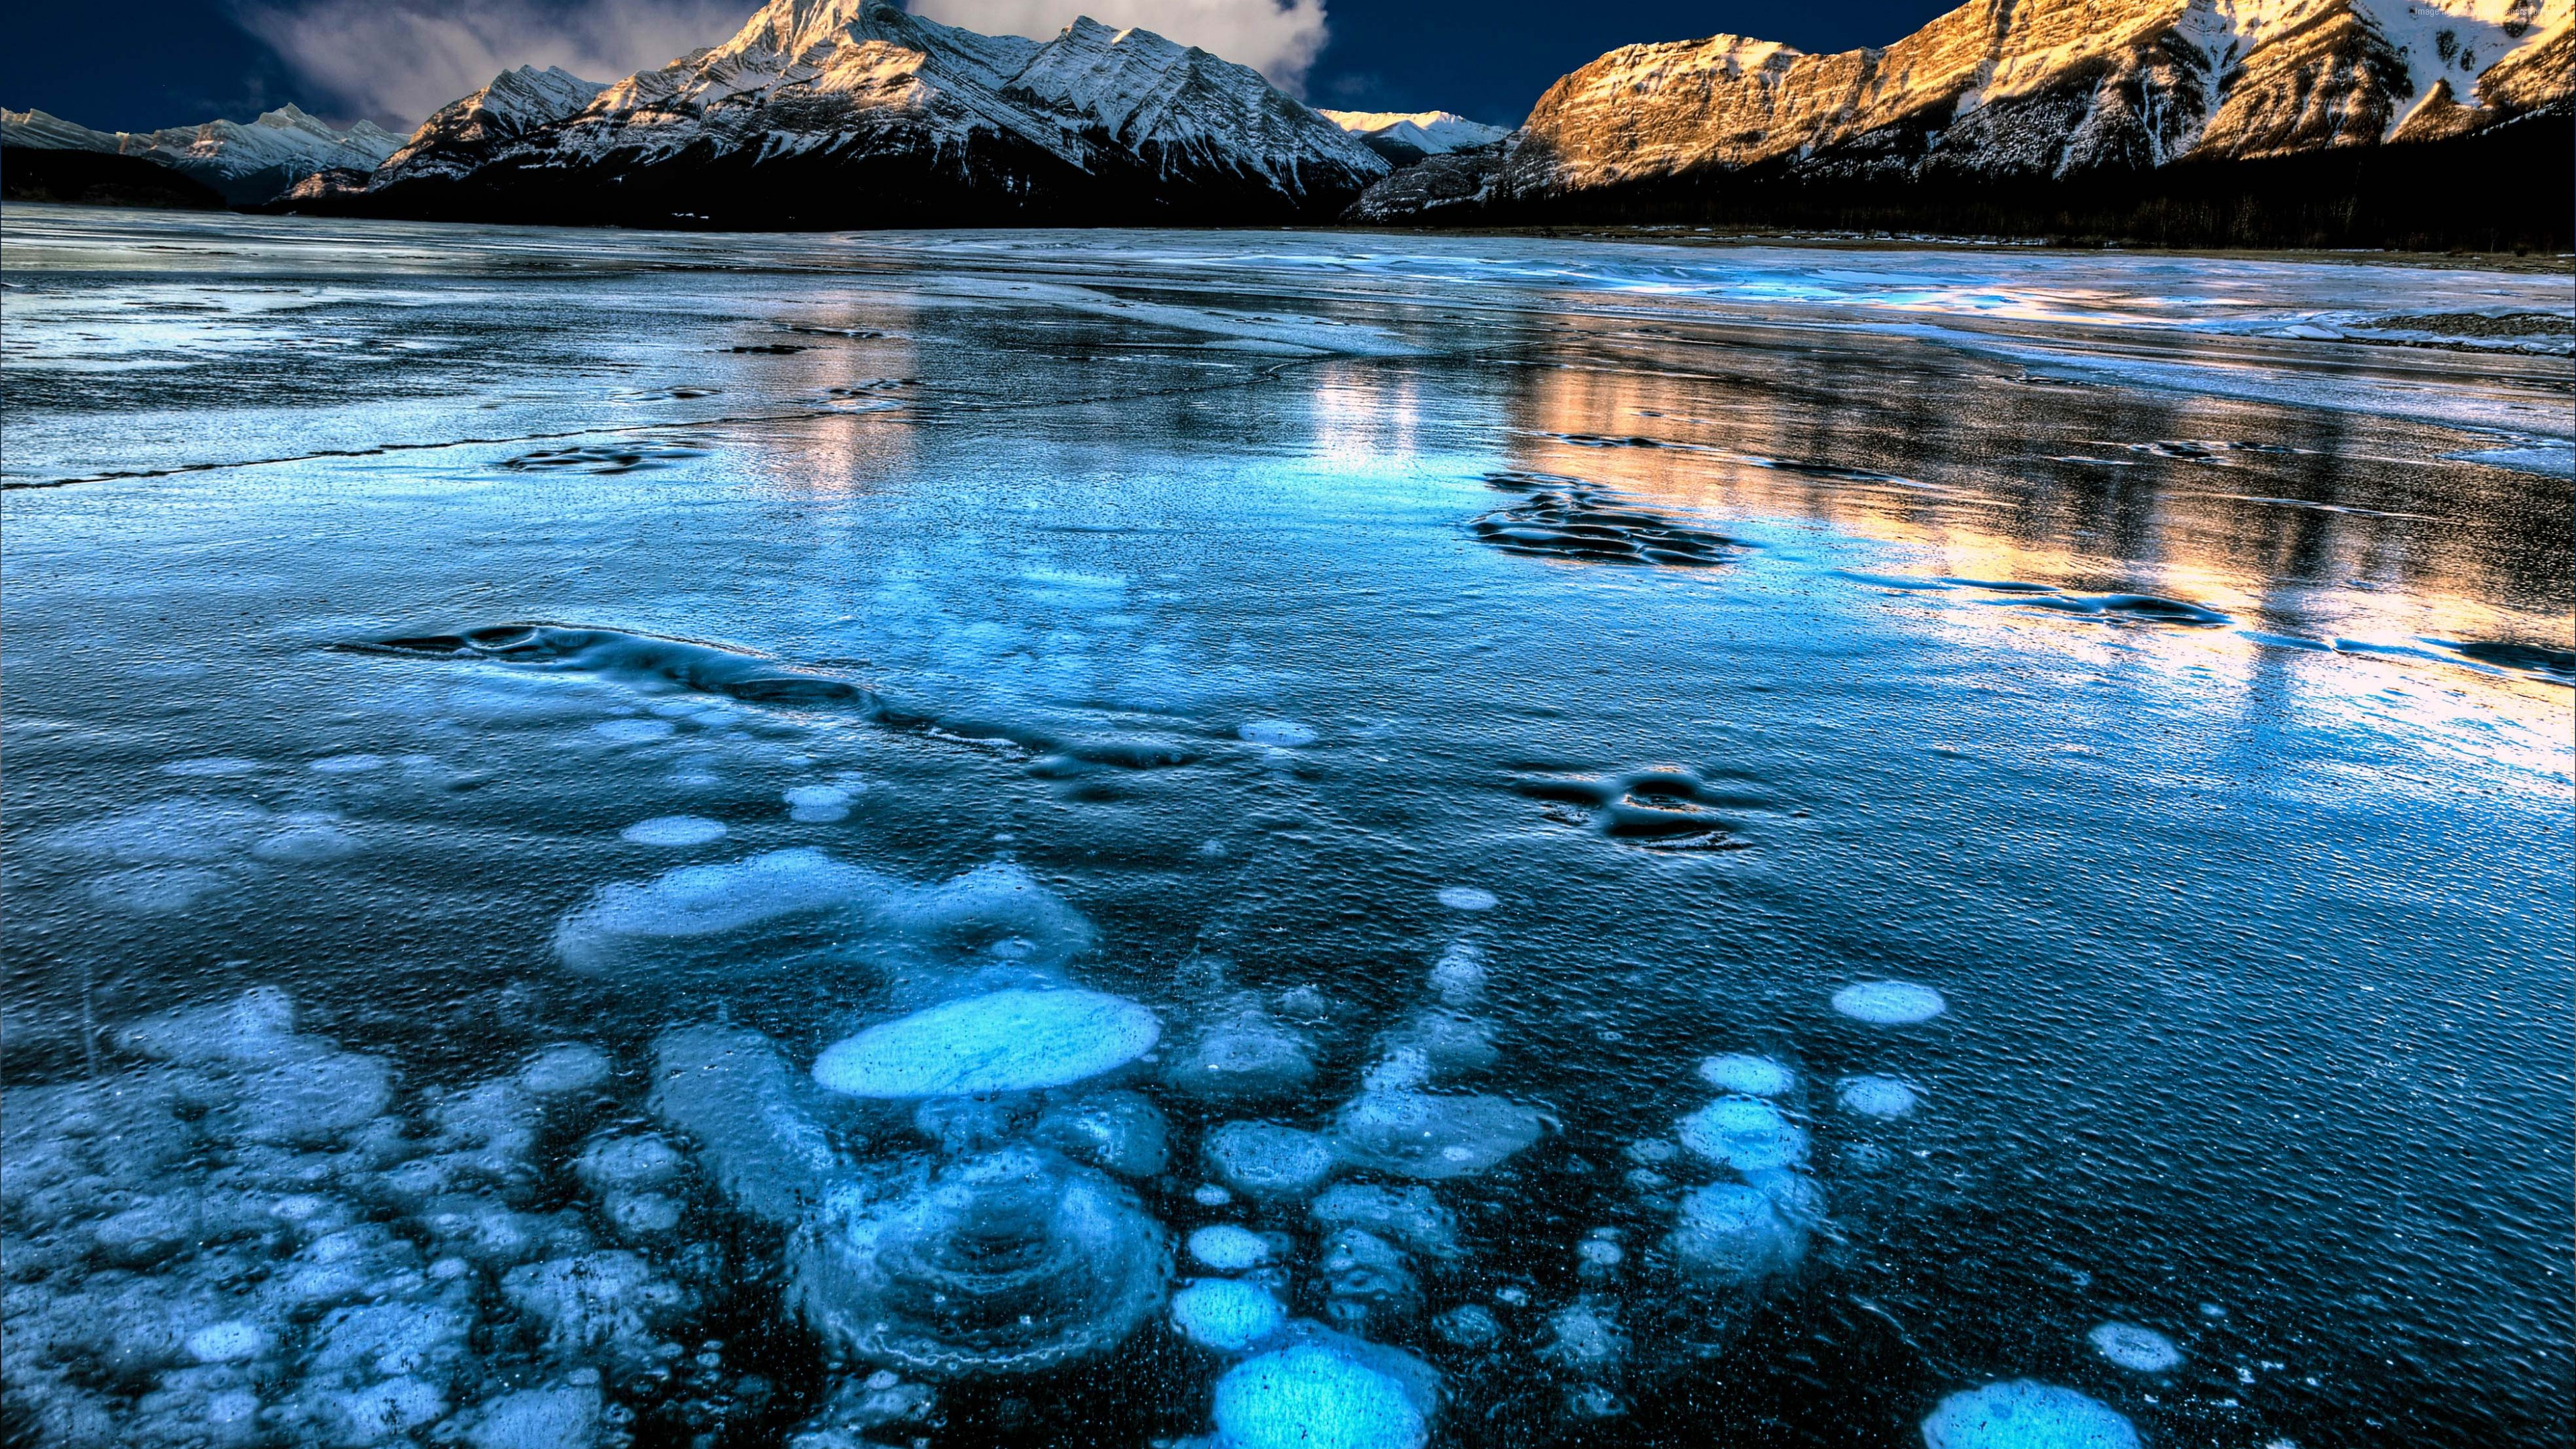 Wallpaper Abraham Lake Canada Mountain Ice 4k Travel Wallpaper Download High Resolution 4k Wallpaper